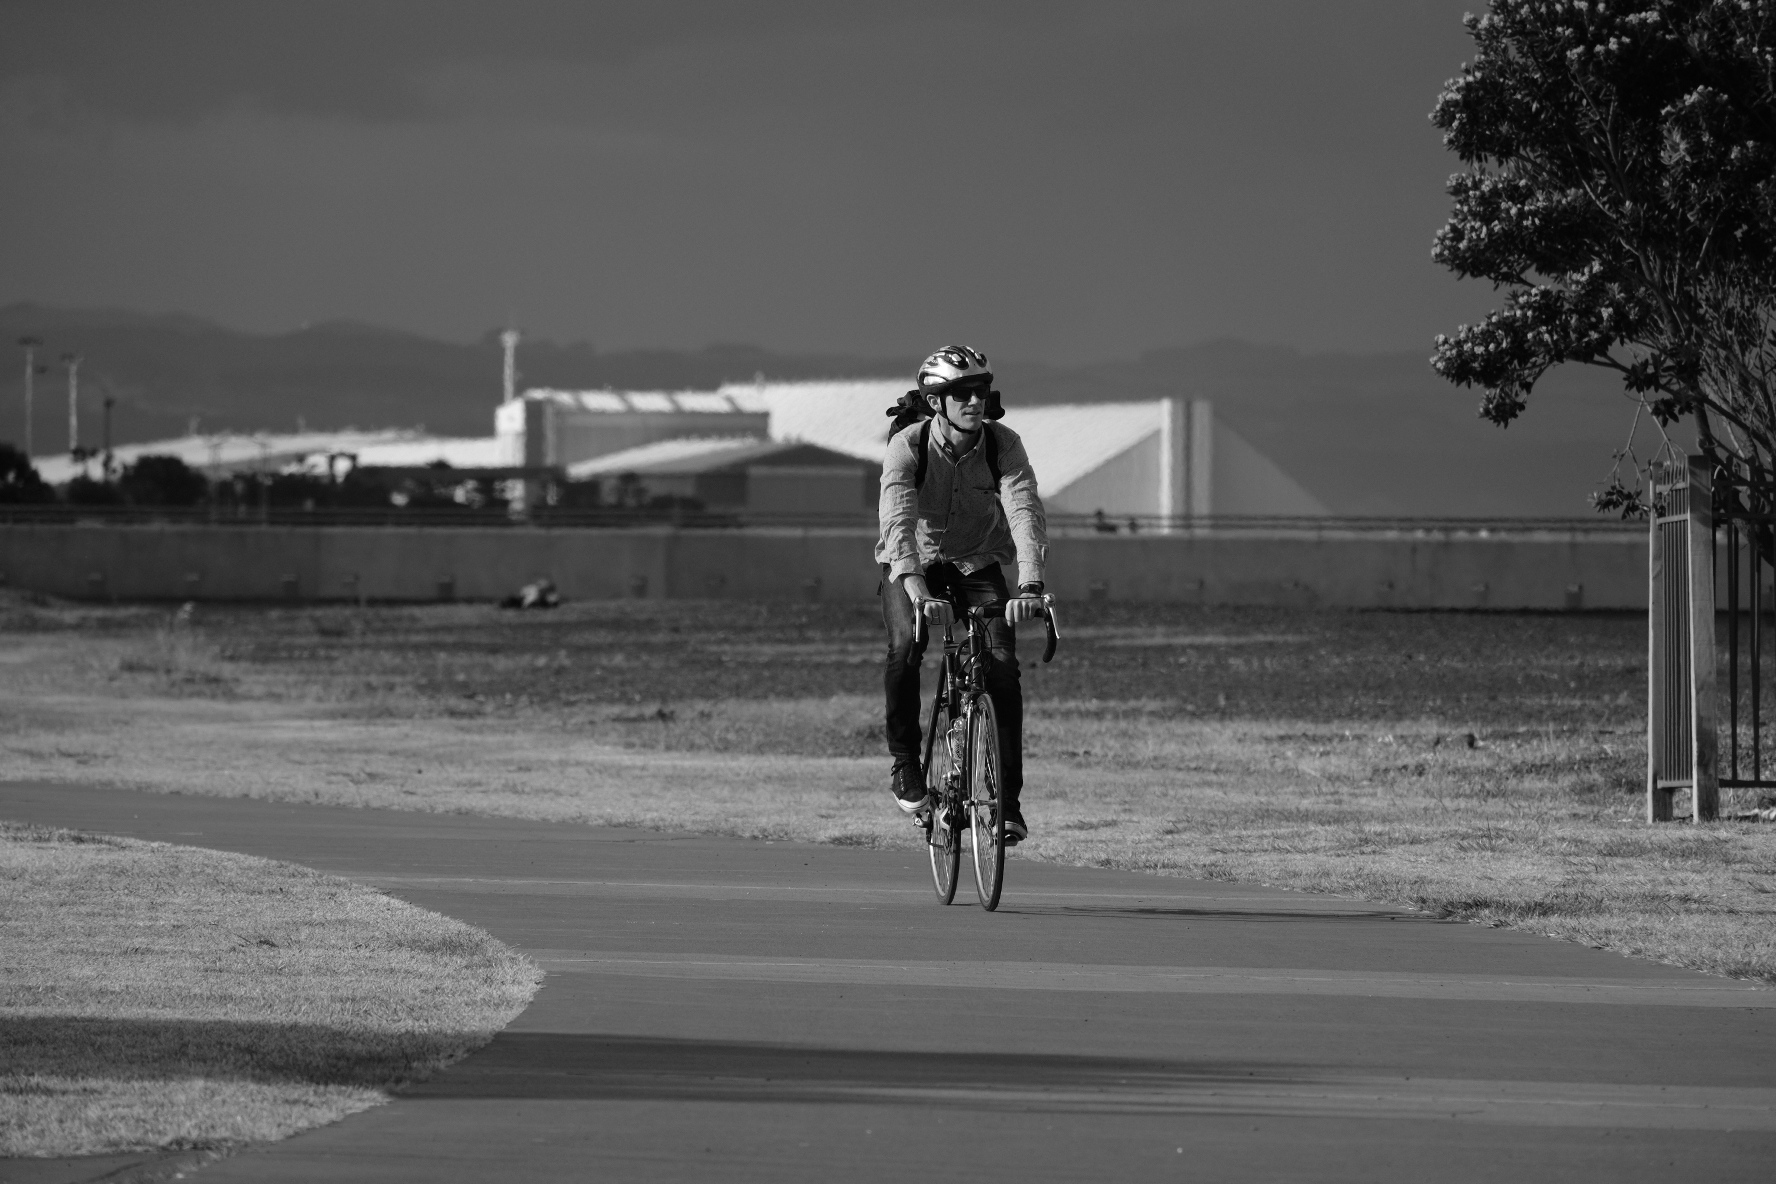 I was tracking the cyclist at 230mm at f6.7, and it nailed focus well